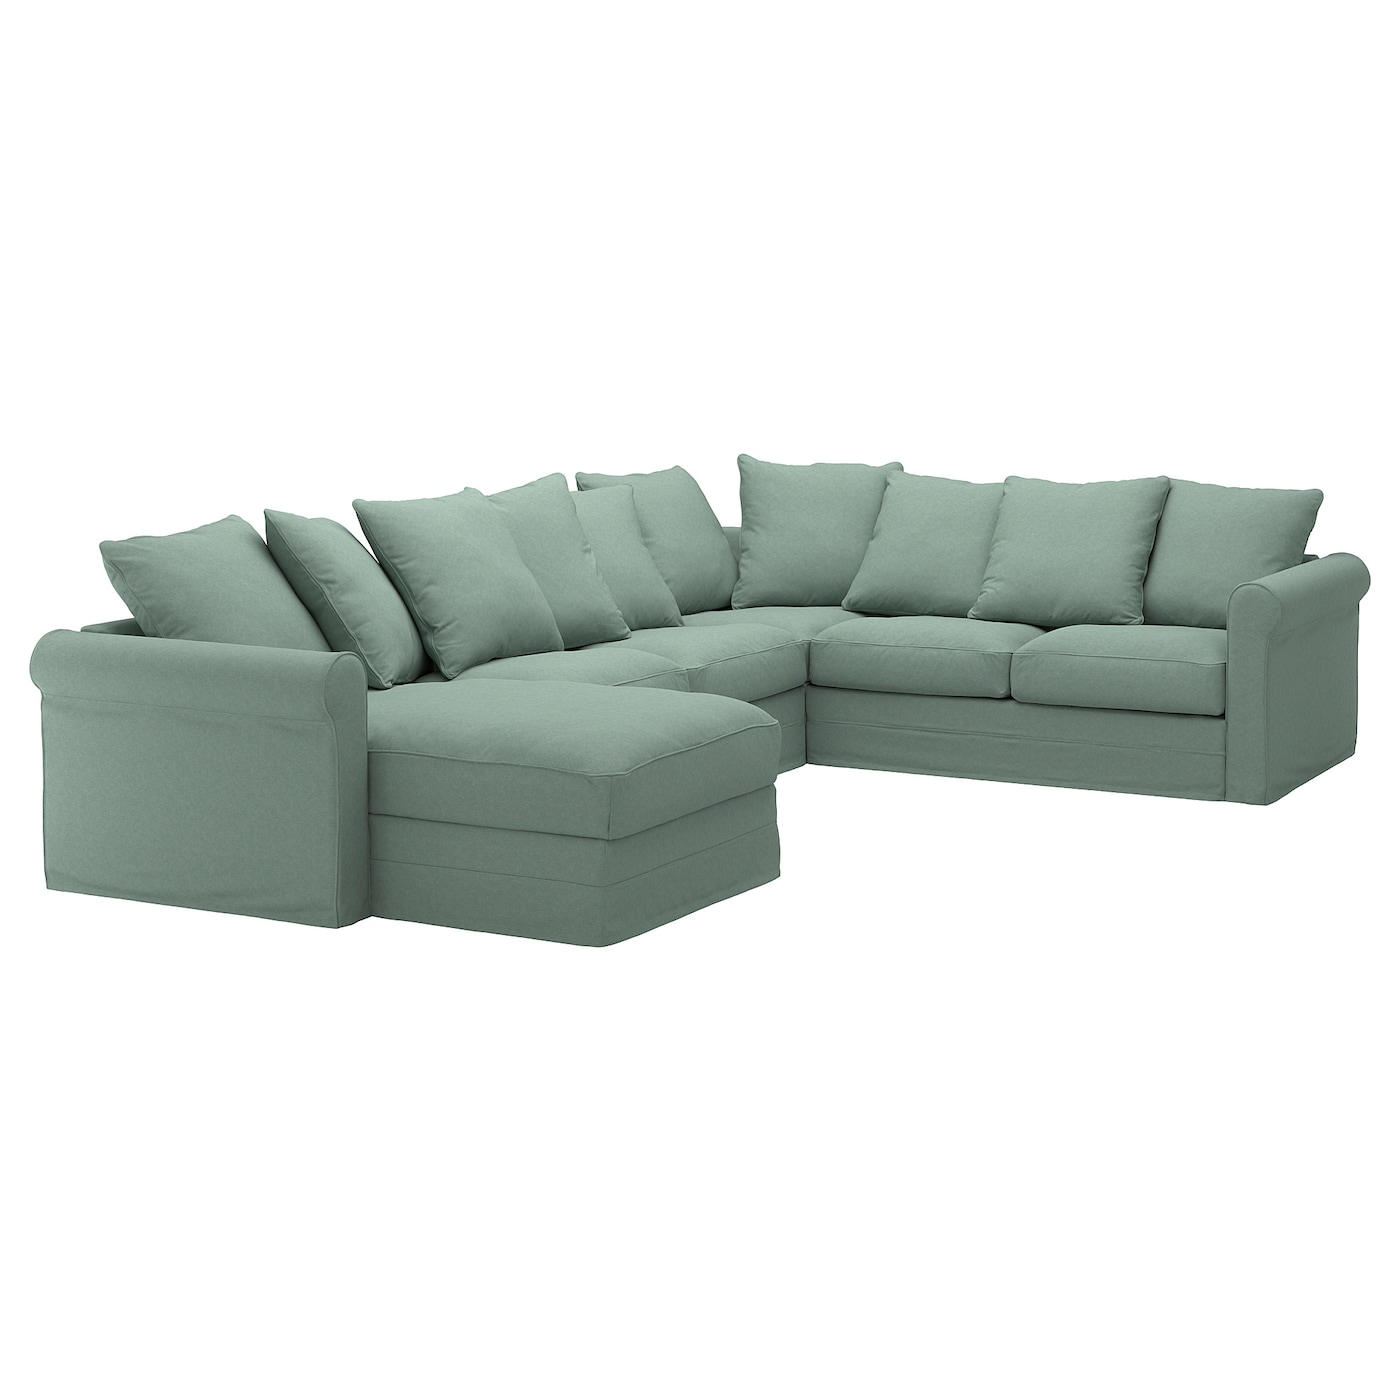 IKEA GRÖNLID corner sofa, 5-seat 10 year guarantee. Read about the terms in the guarantee brochure.